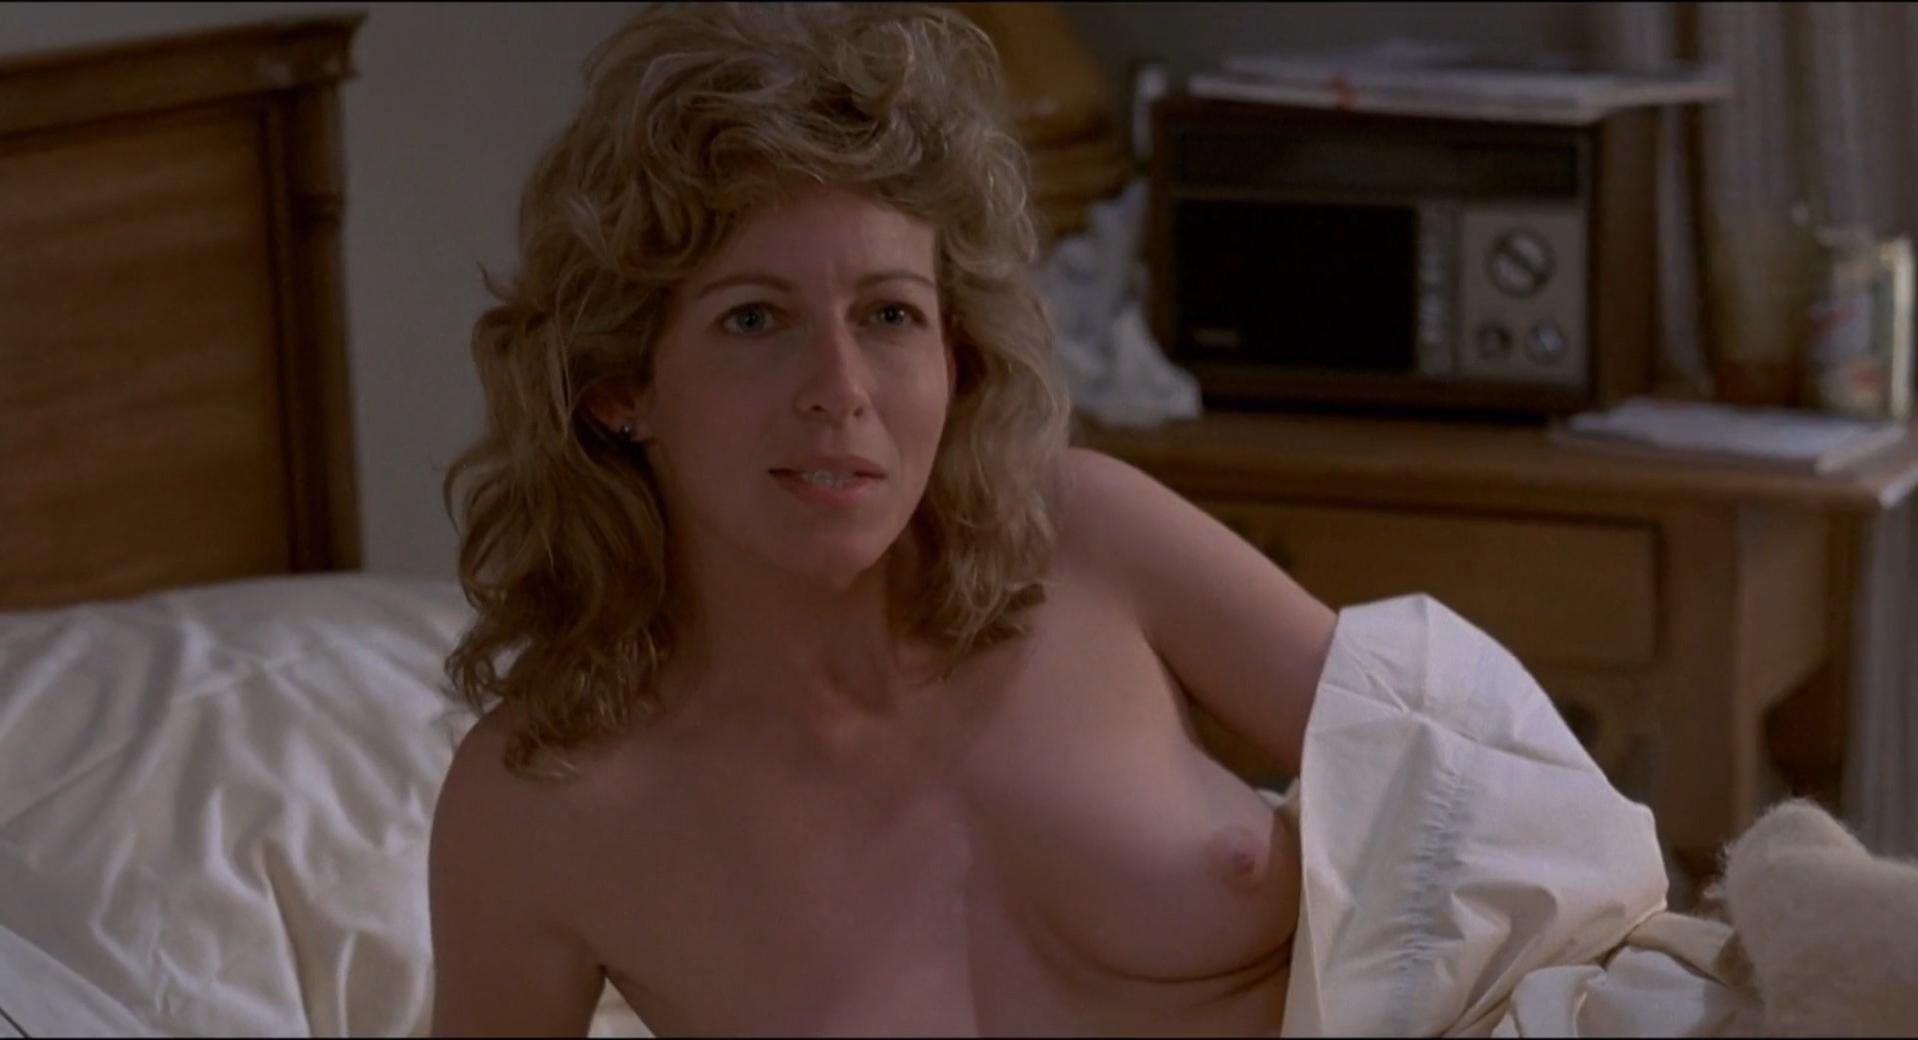 JoBeth Williams nude, Julia Jennings nude - Teachers (1984)